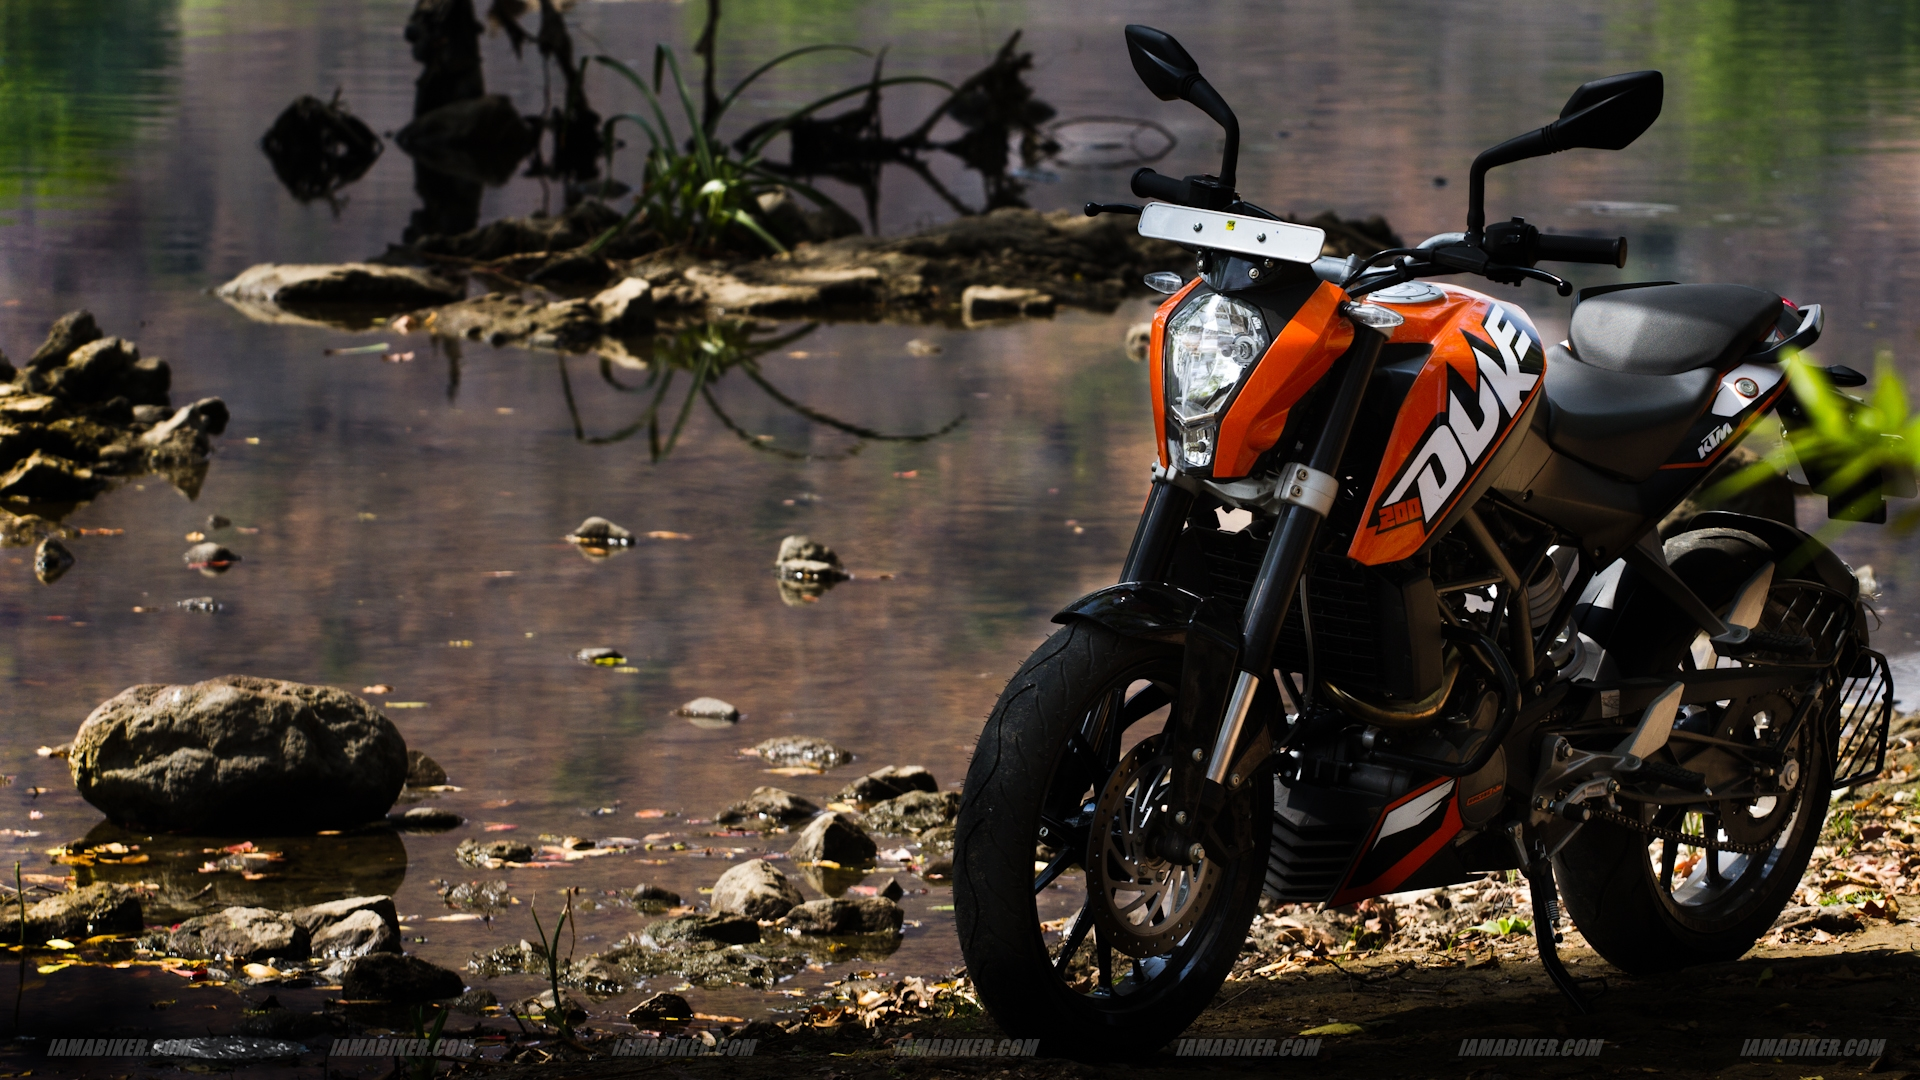 2014 ktm 200 duke wallpaper pictures to pin on pinterest